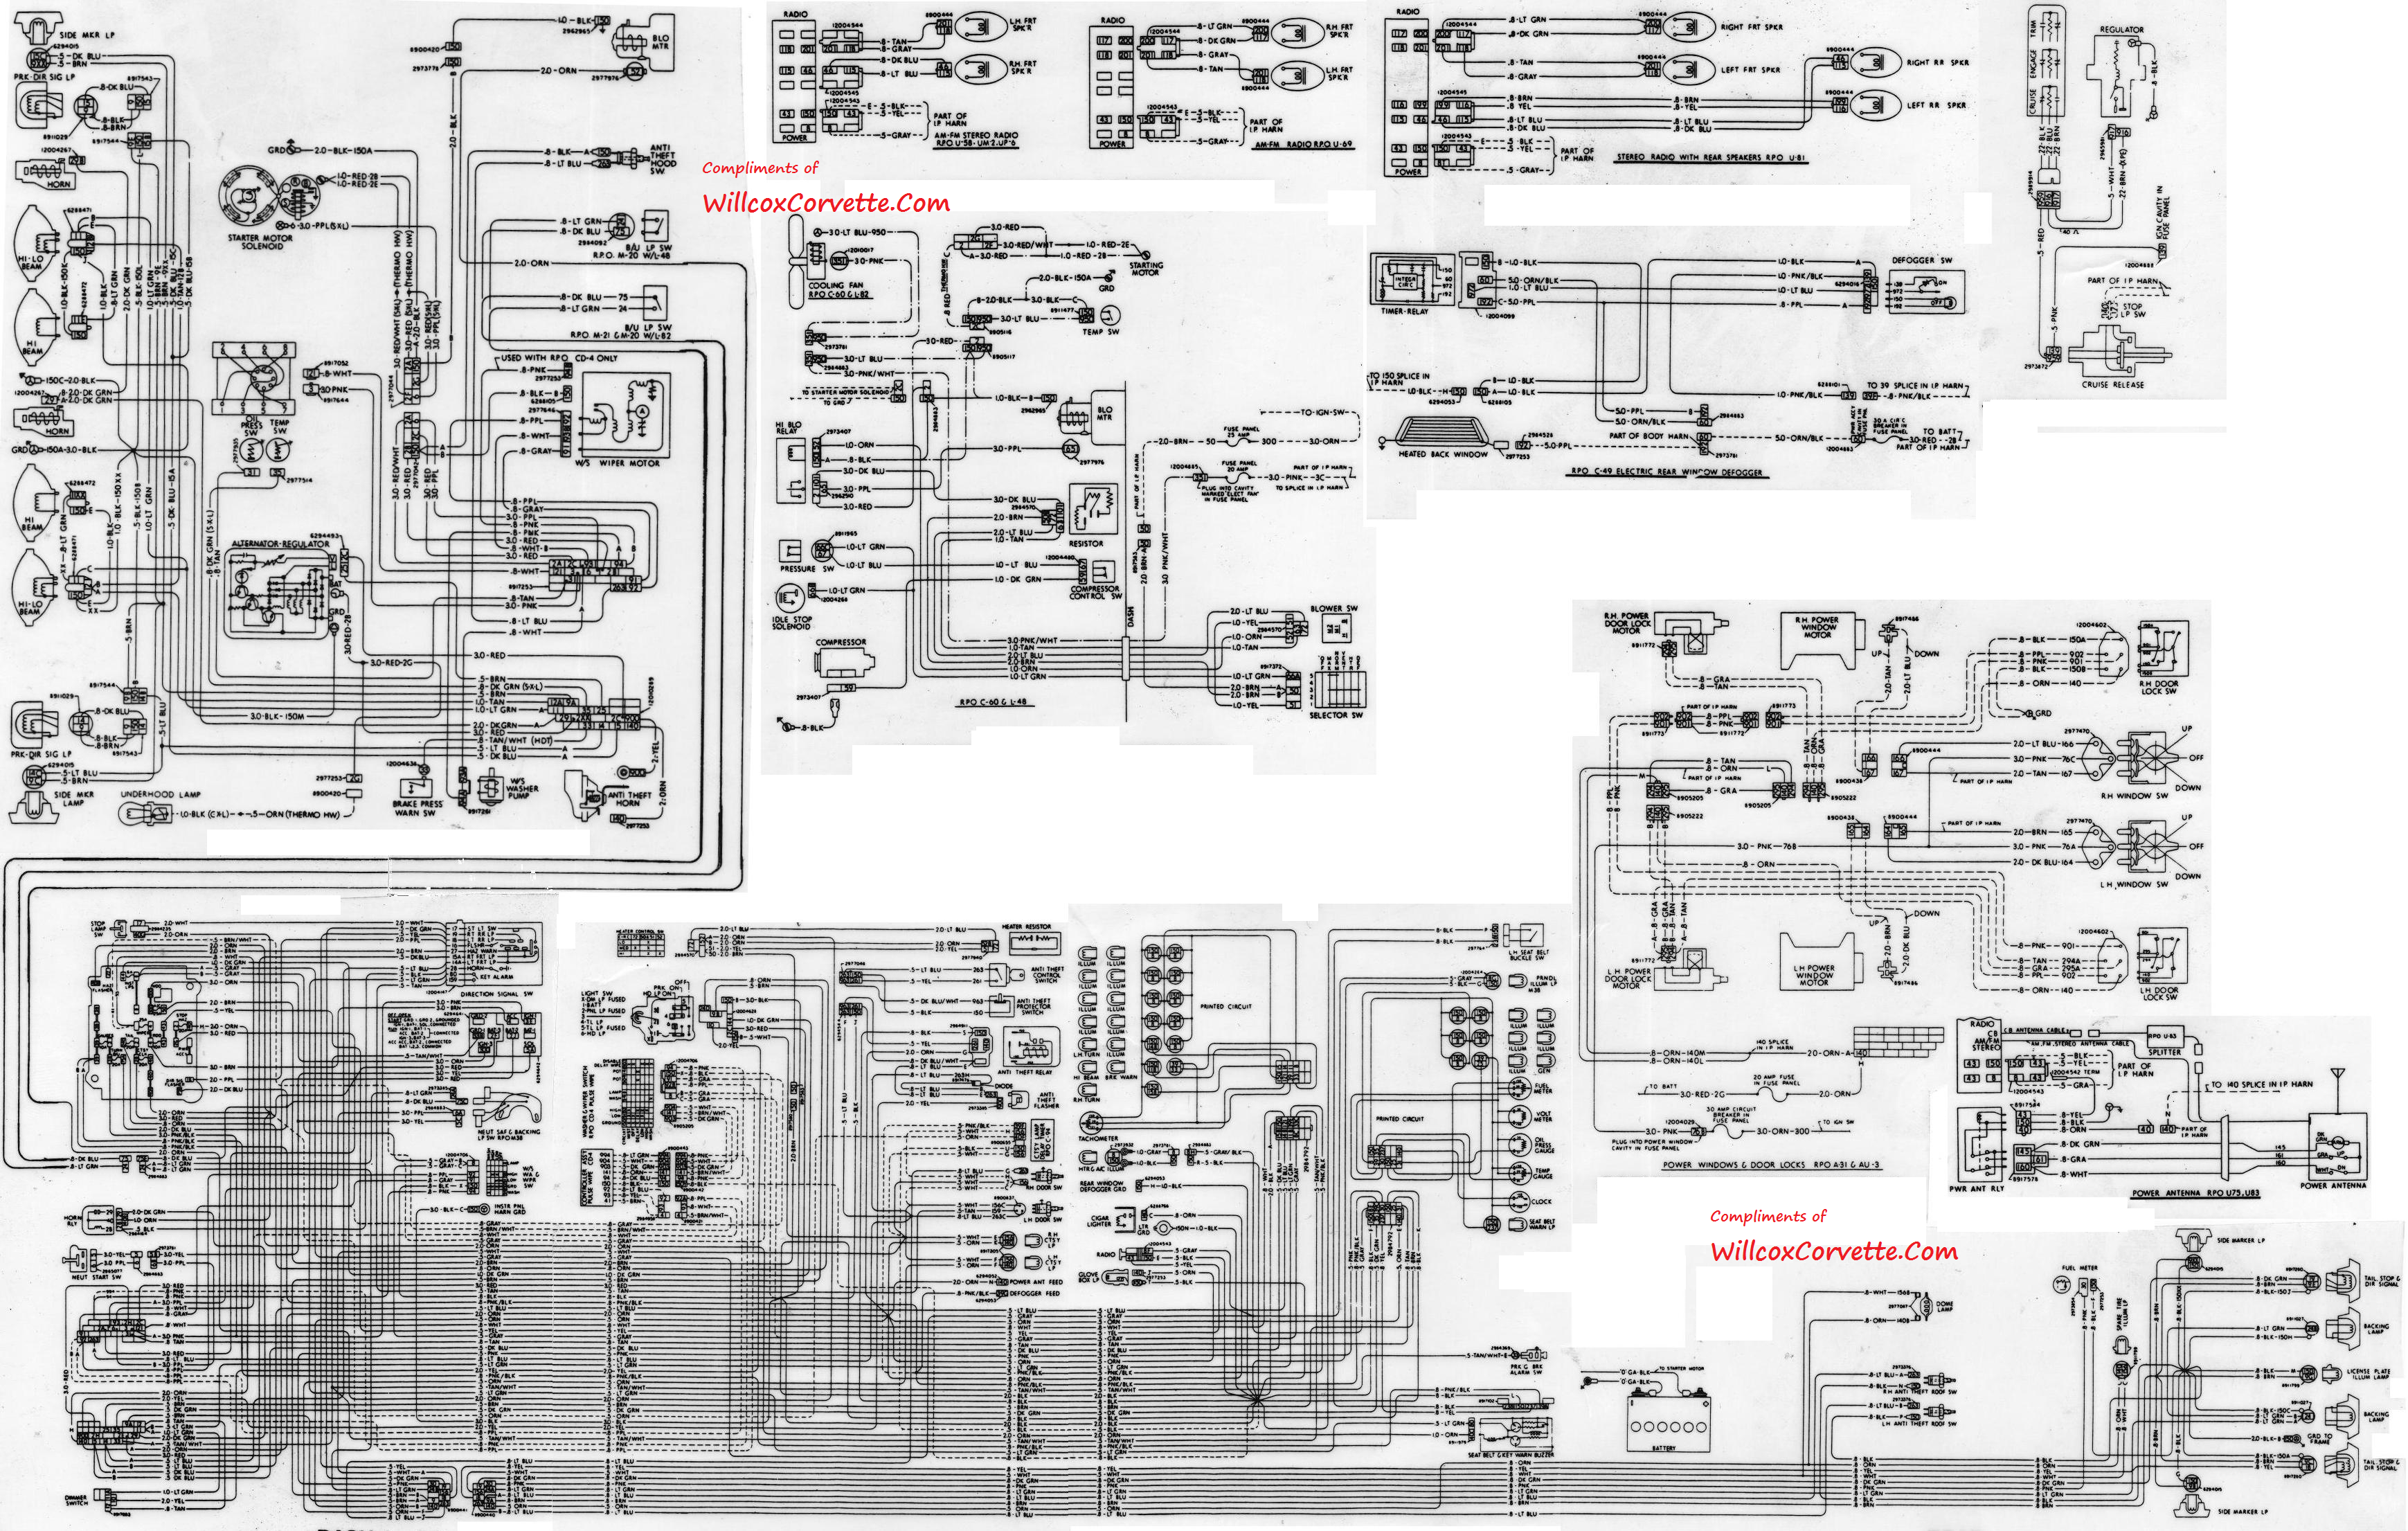 1979 wiring diagram corvetteforum chevrolet corvette forum 1989 C4 Corvette Wiring Diagrams